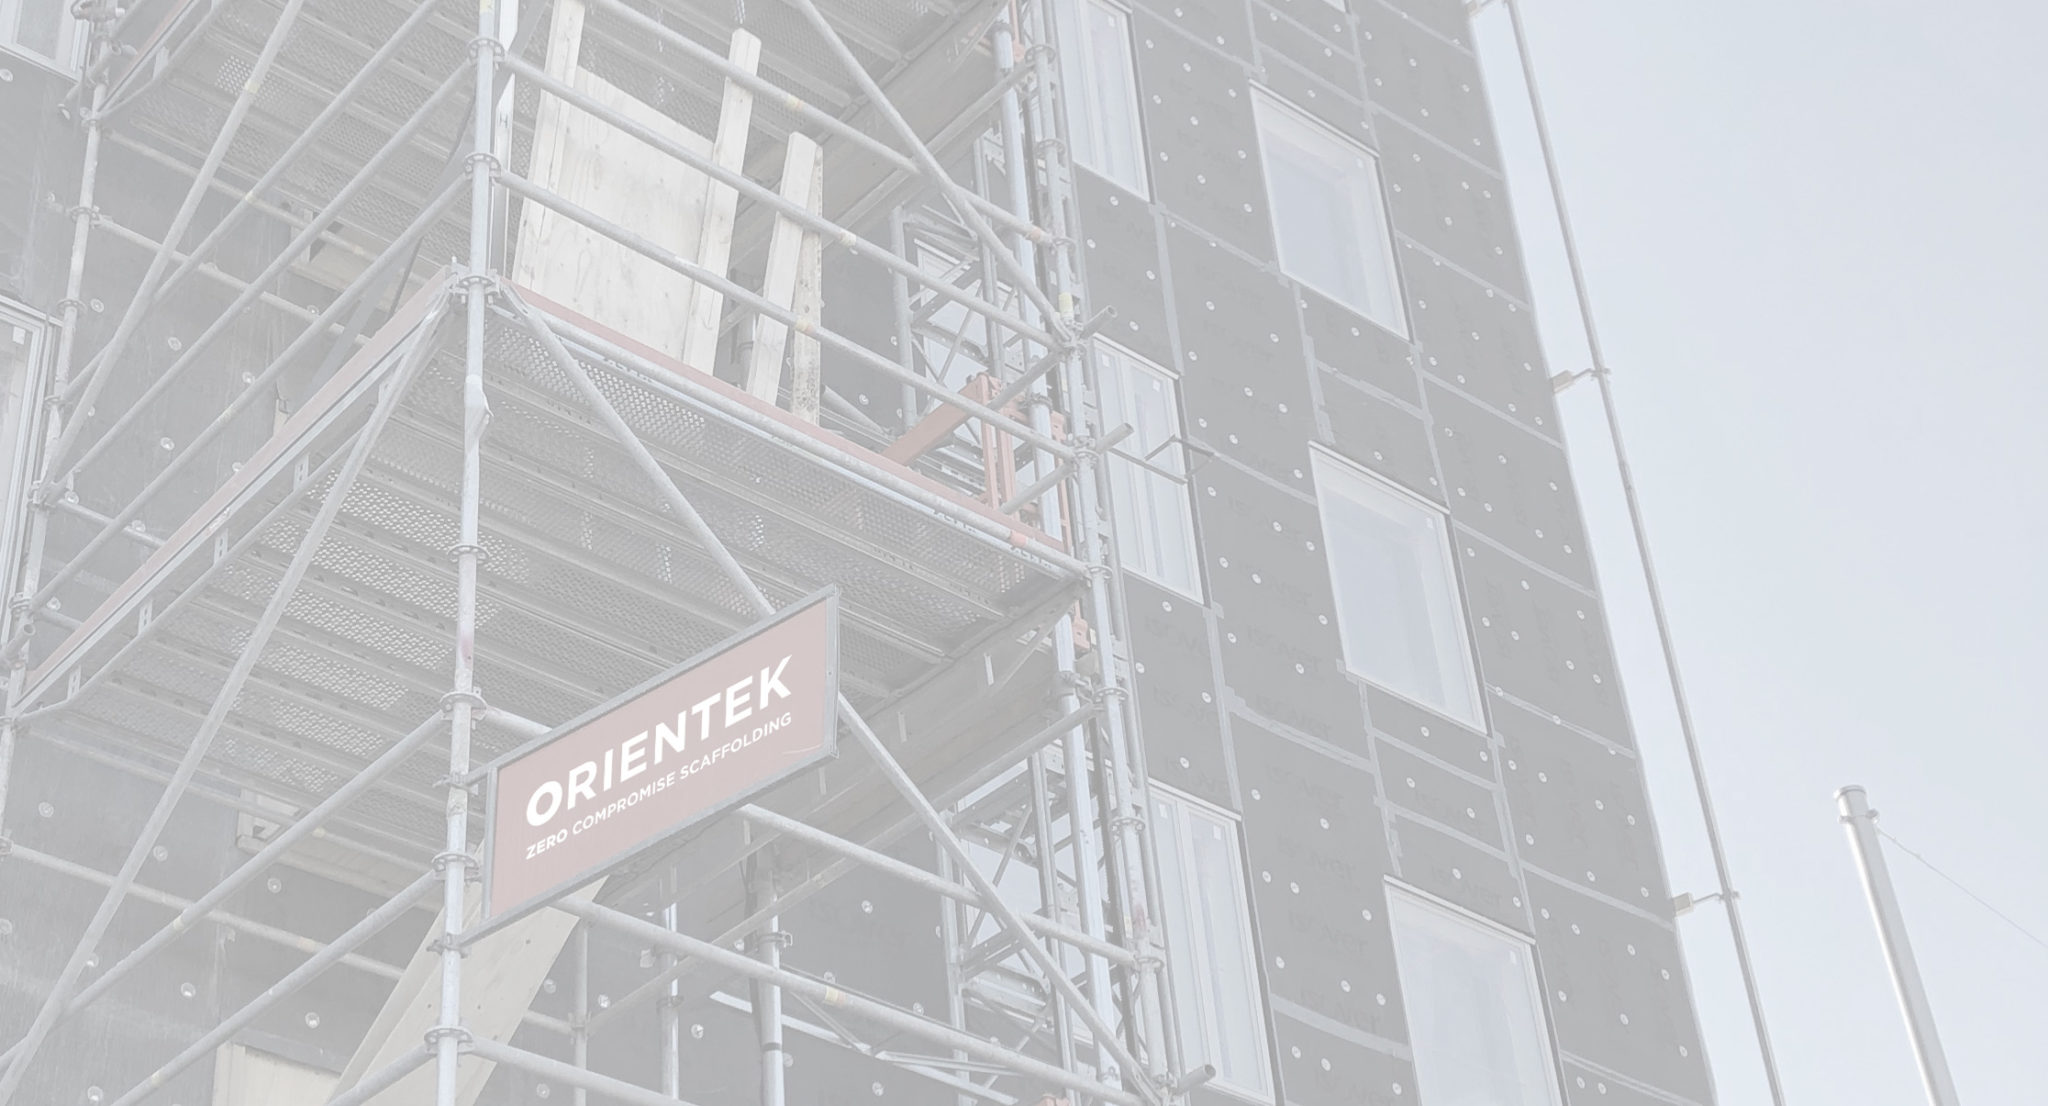 Orientek zero compromise Scaffolding frames on commercial construction